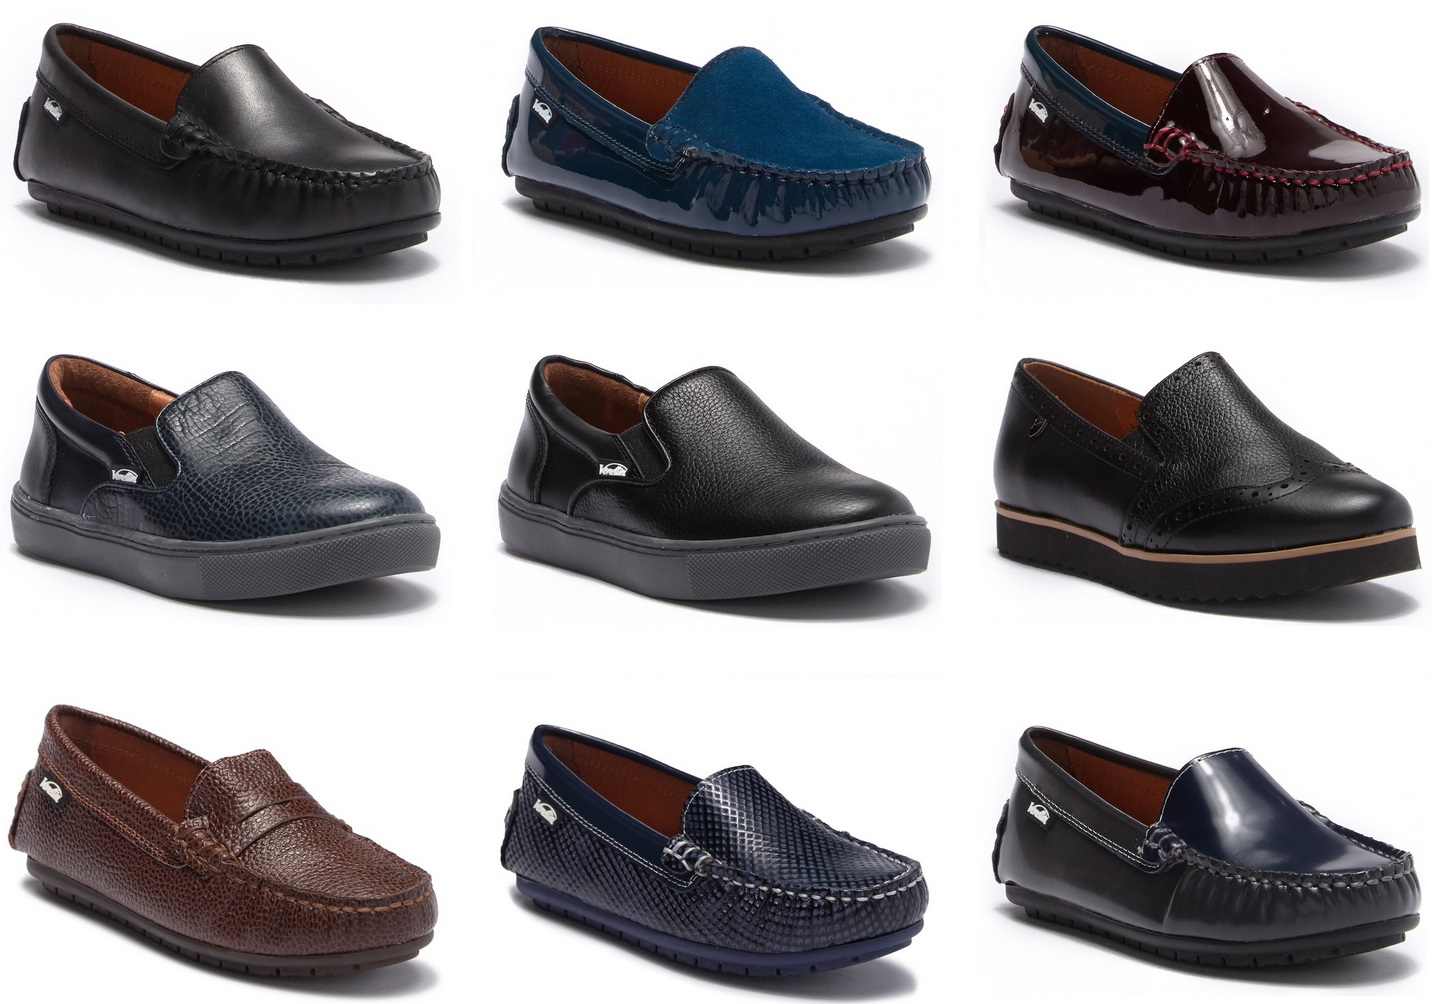 8ac64fac82c Venettini Kids Shoe and Sneaker Sale – Only  59.97 From NordstromRack!